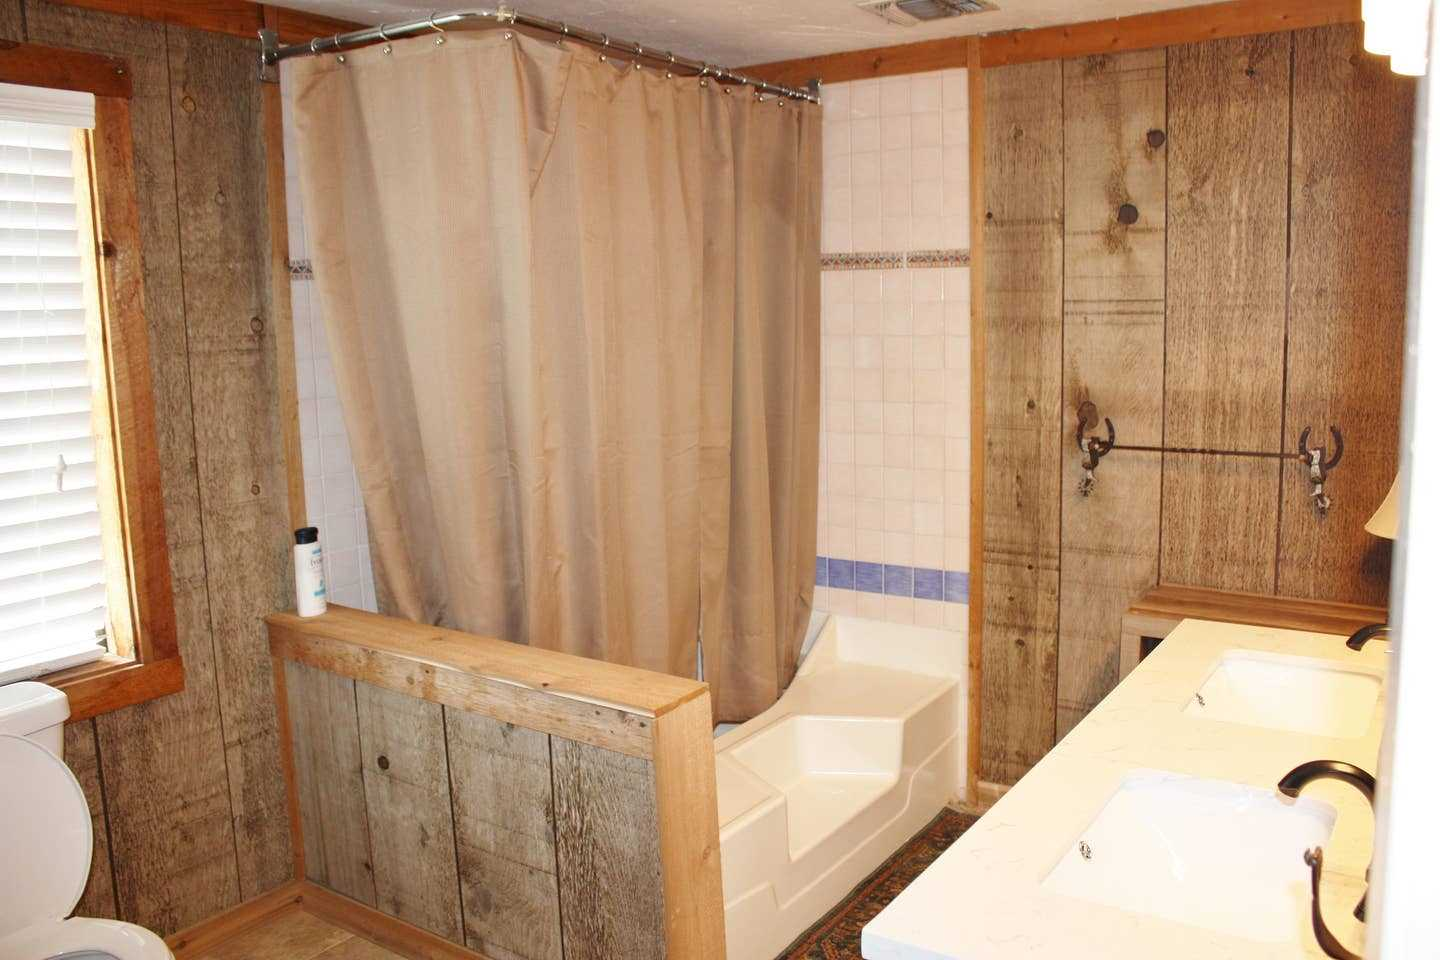 There's also a tub and shower combo in the master bath, and clean bathroom linens are provided in both bathrooms for all guests.